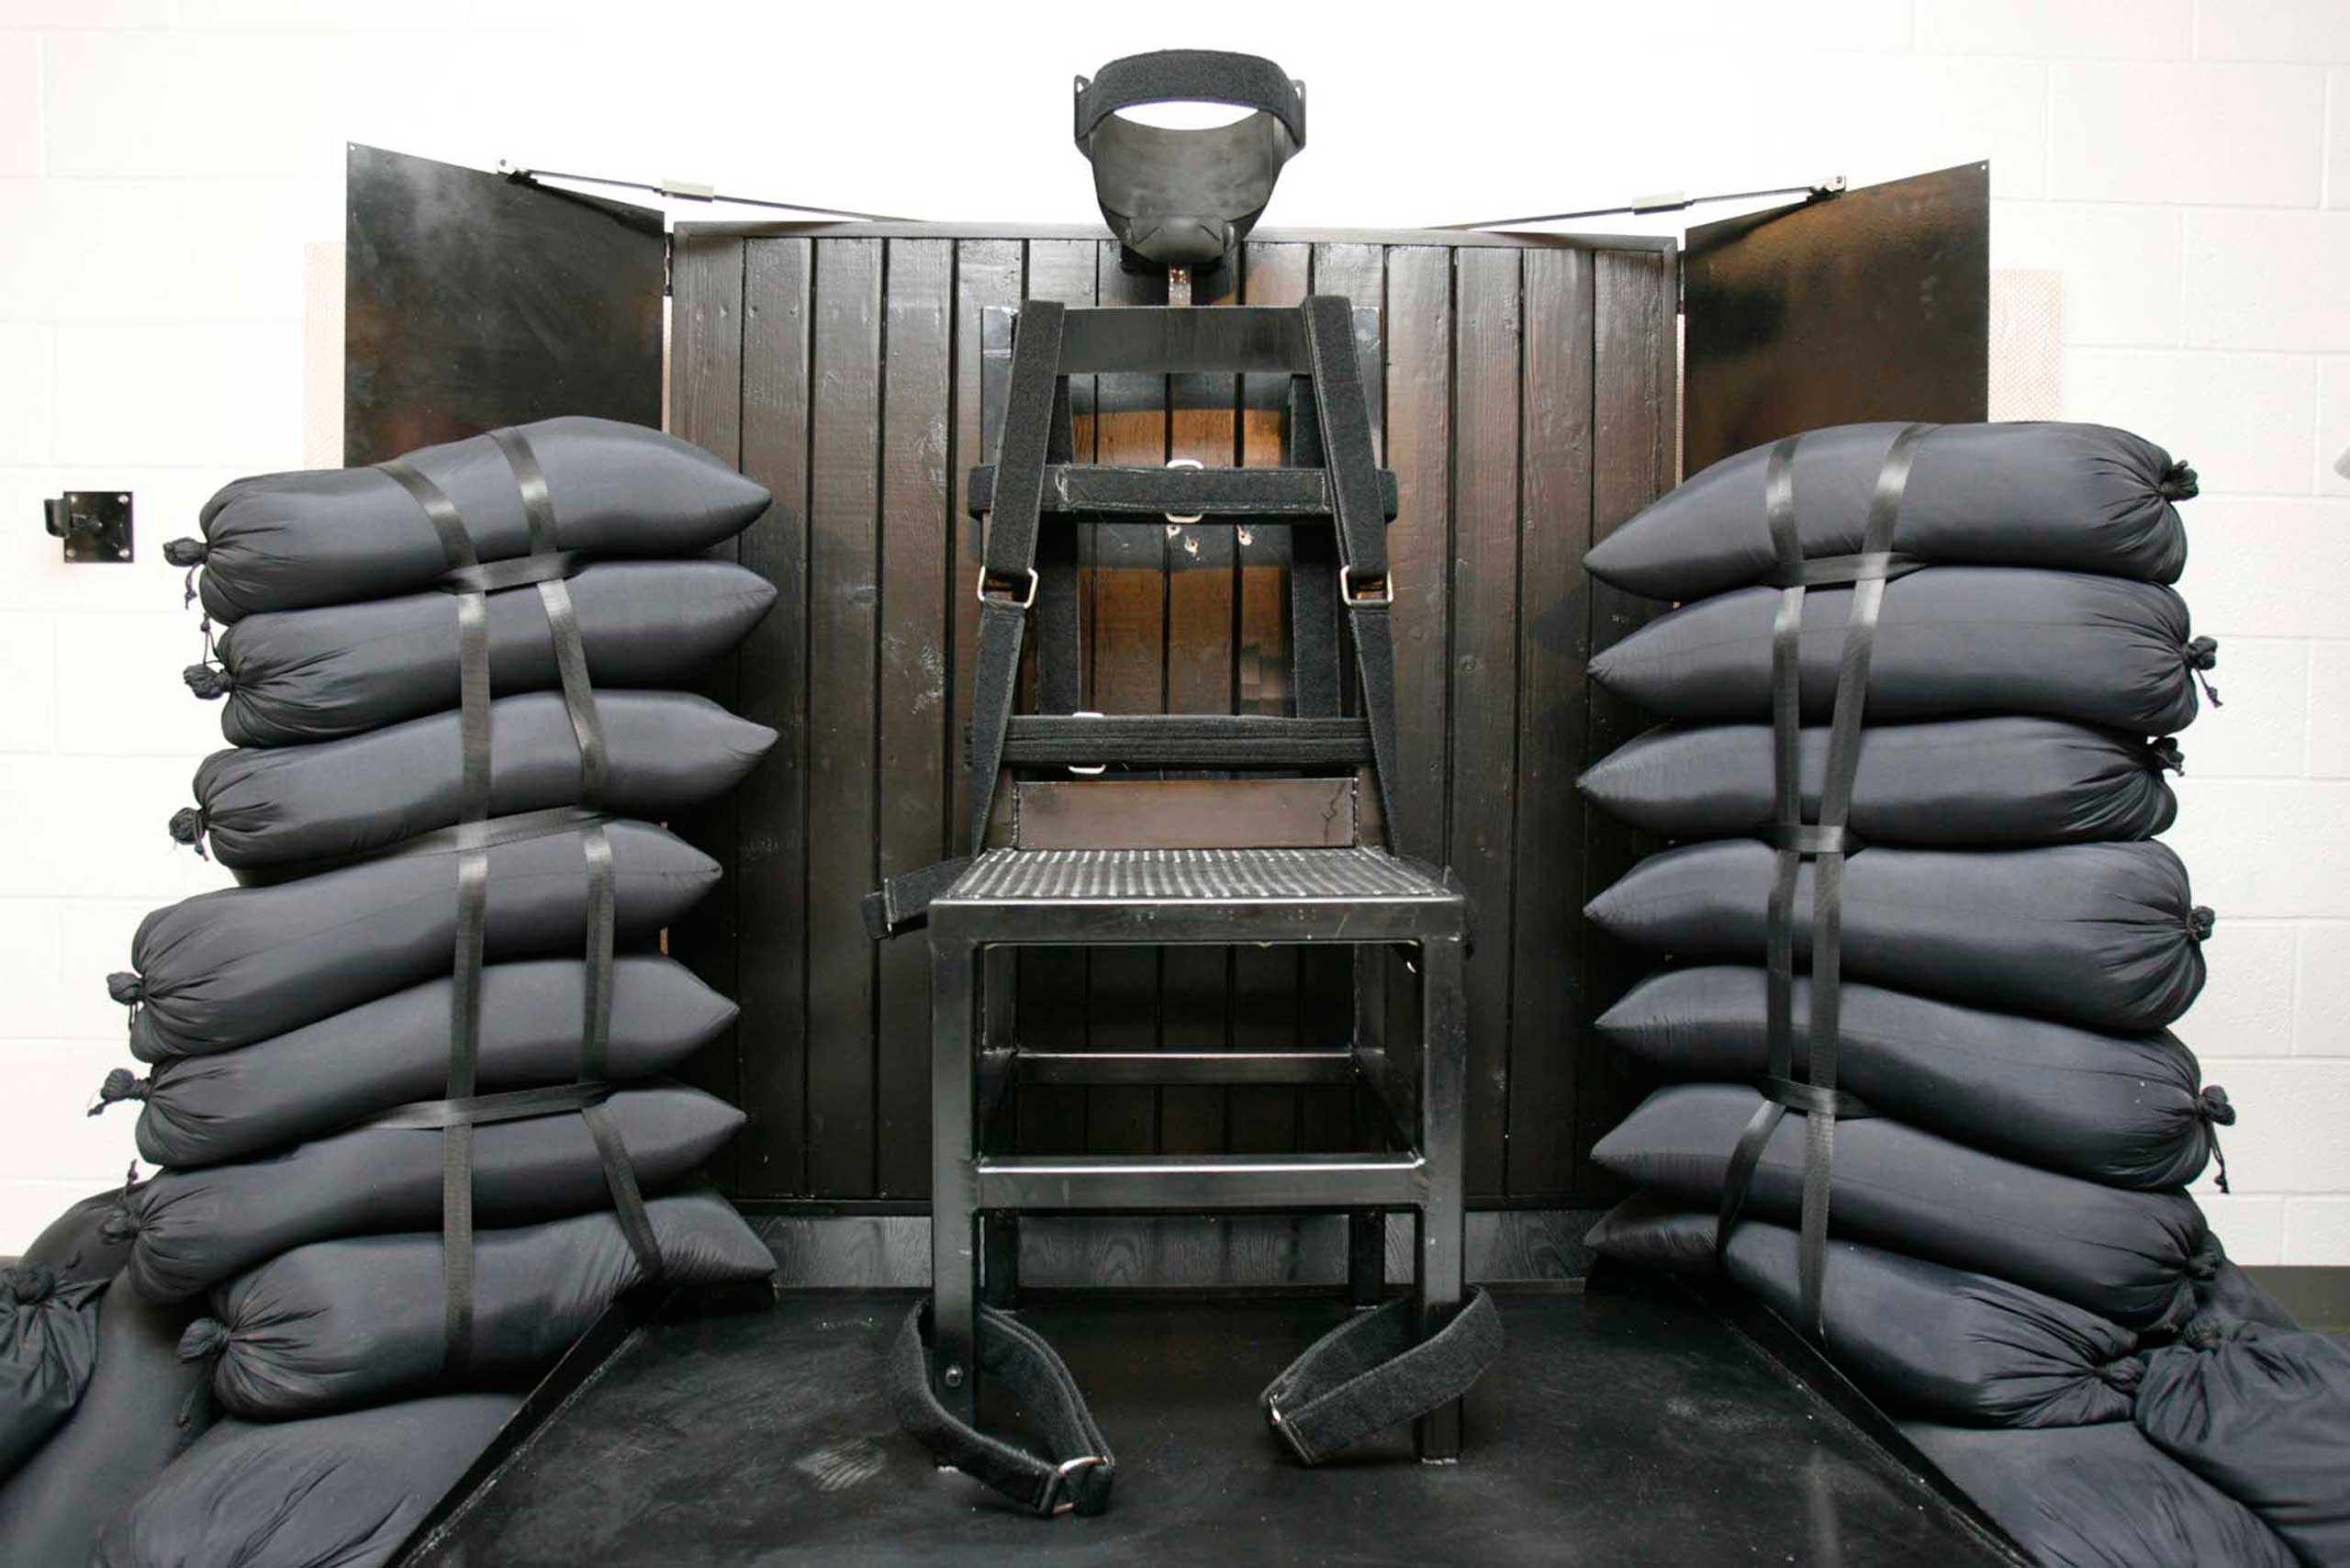 The execution chamber at the Utah State Prison after Ronnie Lee Gardner was executed by firing squad, with visible bullet holes, on June 18, 2010 in Draper, Utah.